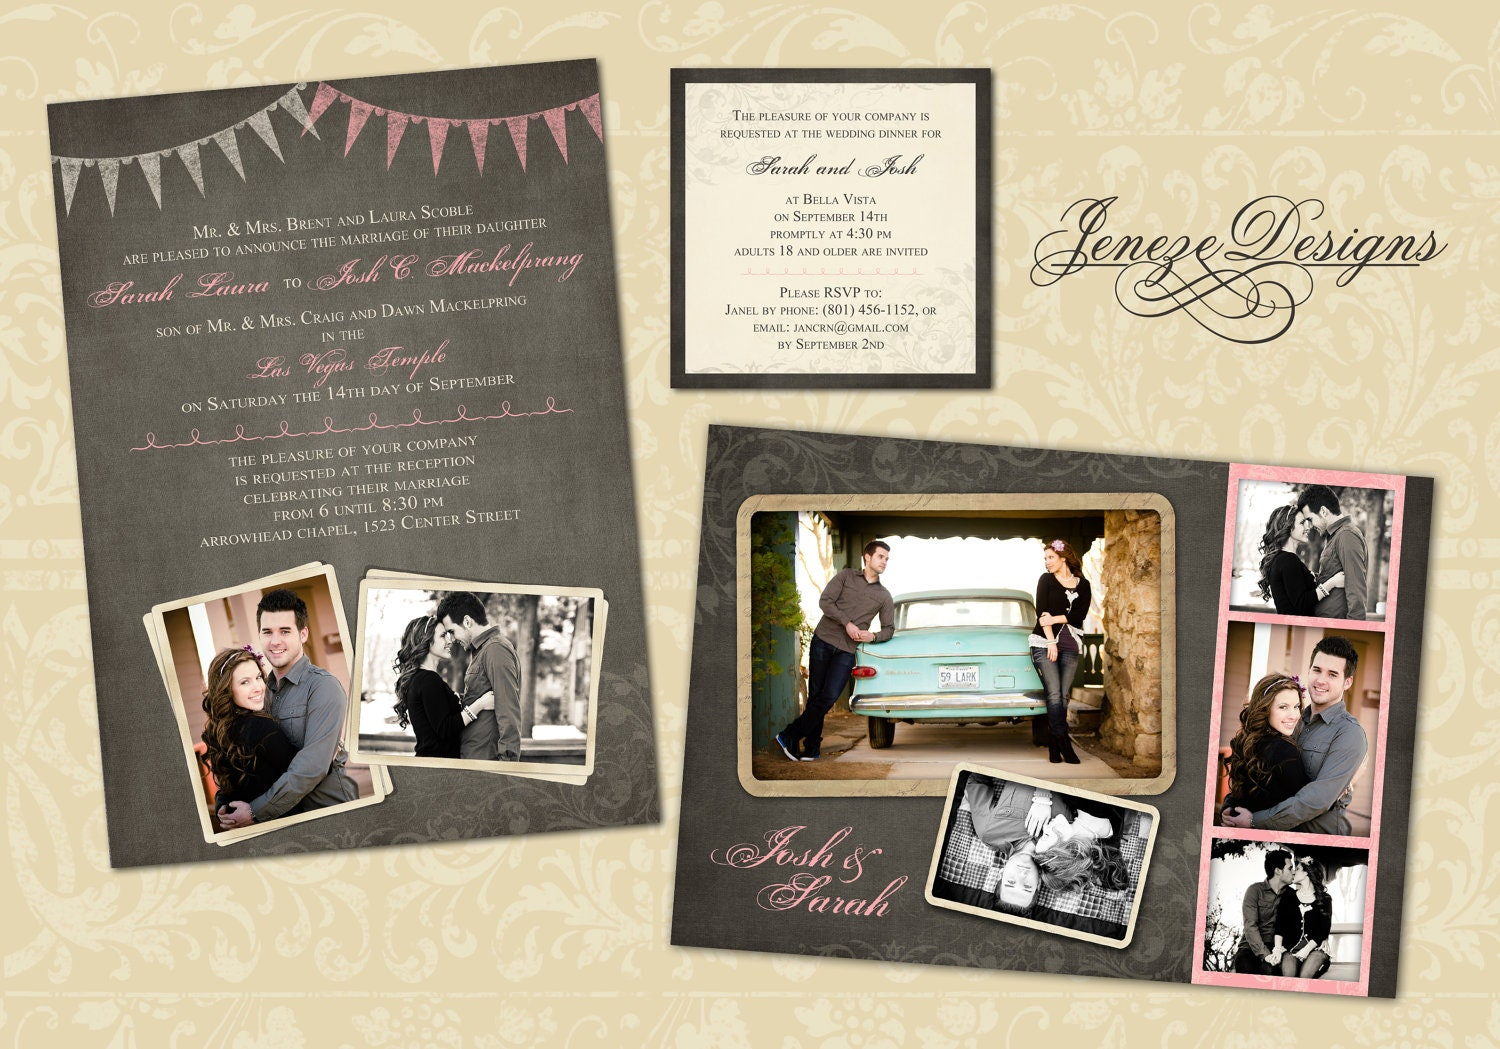 wedding invitation wording wedding invitation templates for photoshop elements. Black Bedroom Furniture Sets. Home Design Ideas